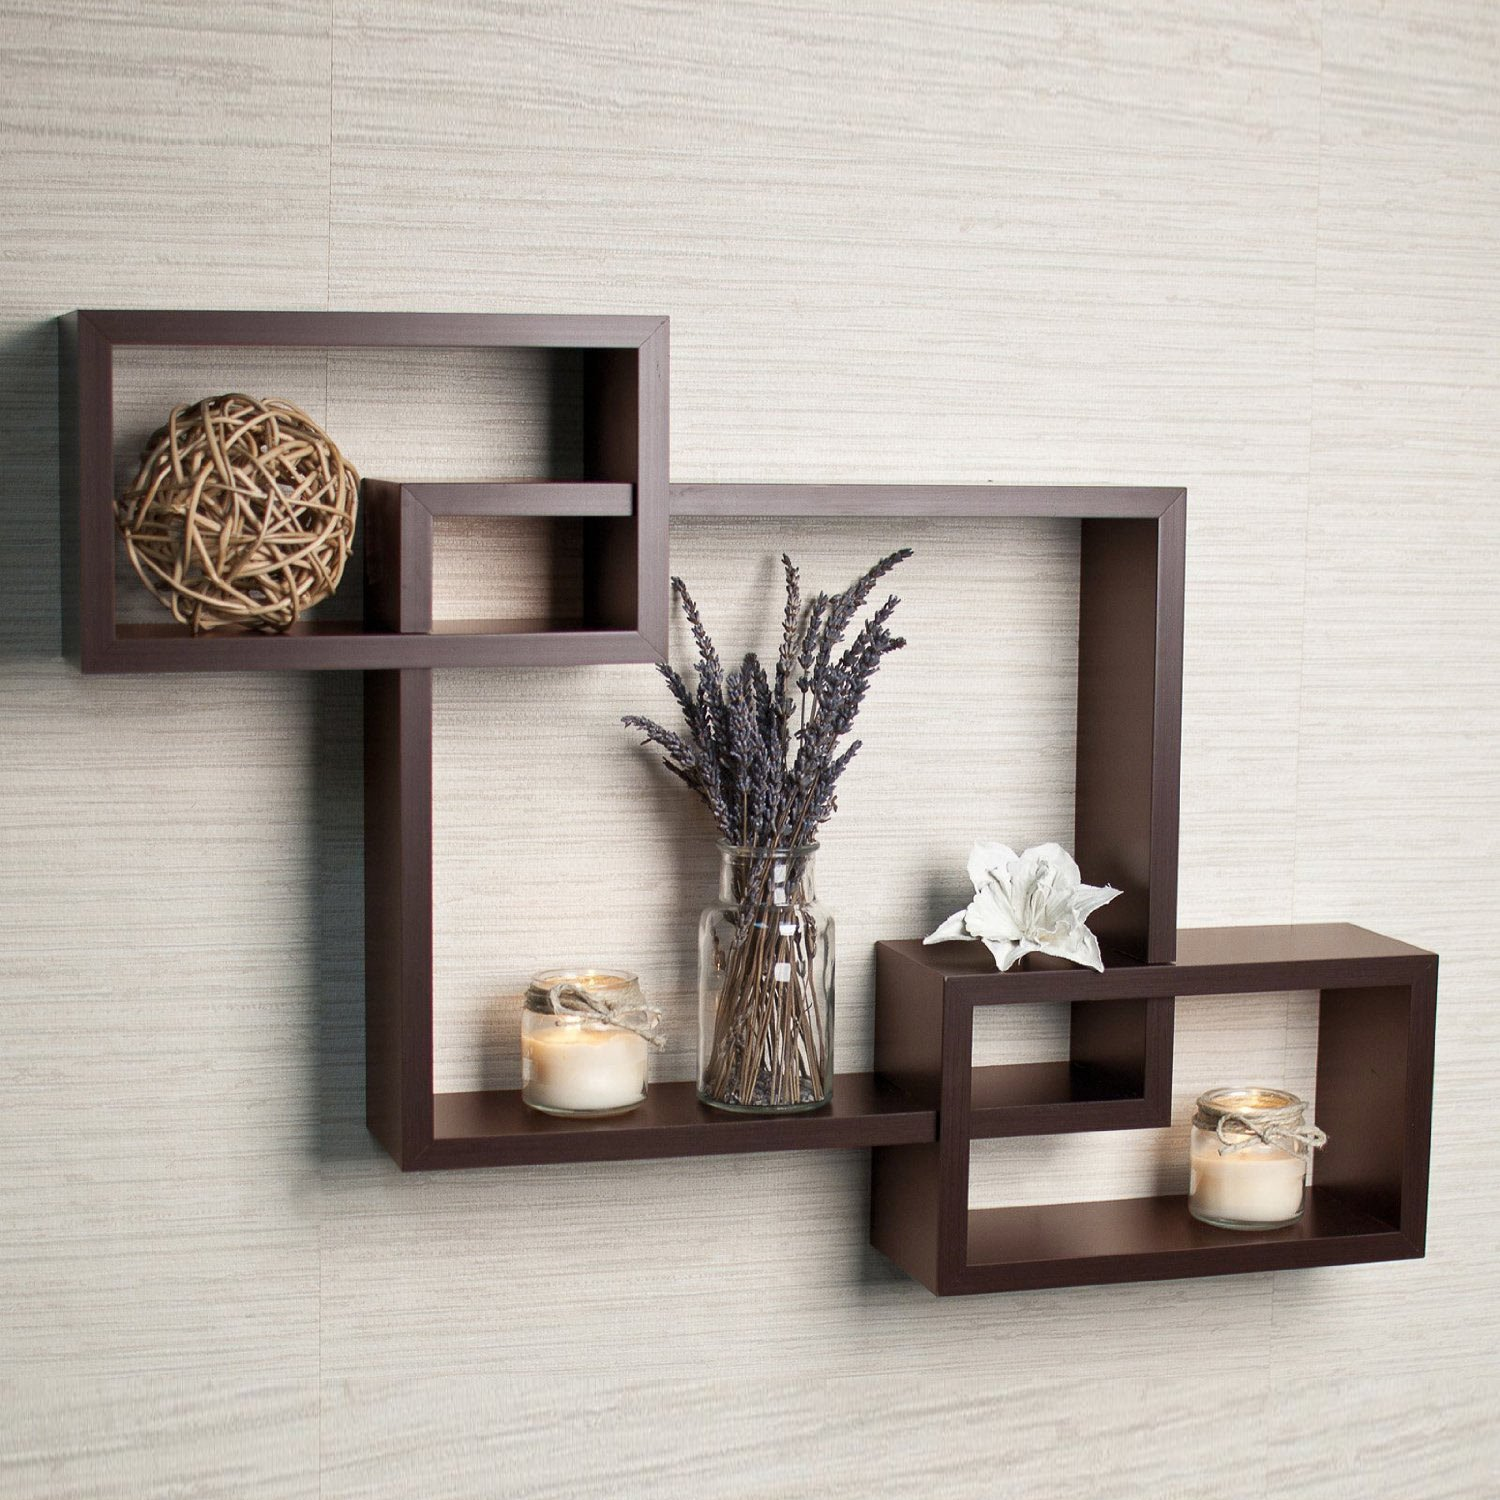 Wall shelves buy wall shelves online at best prices in india driftingwood wall shelf rack set of 3 intersecting wall shelves brown amipublicfo Image collections